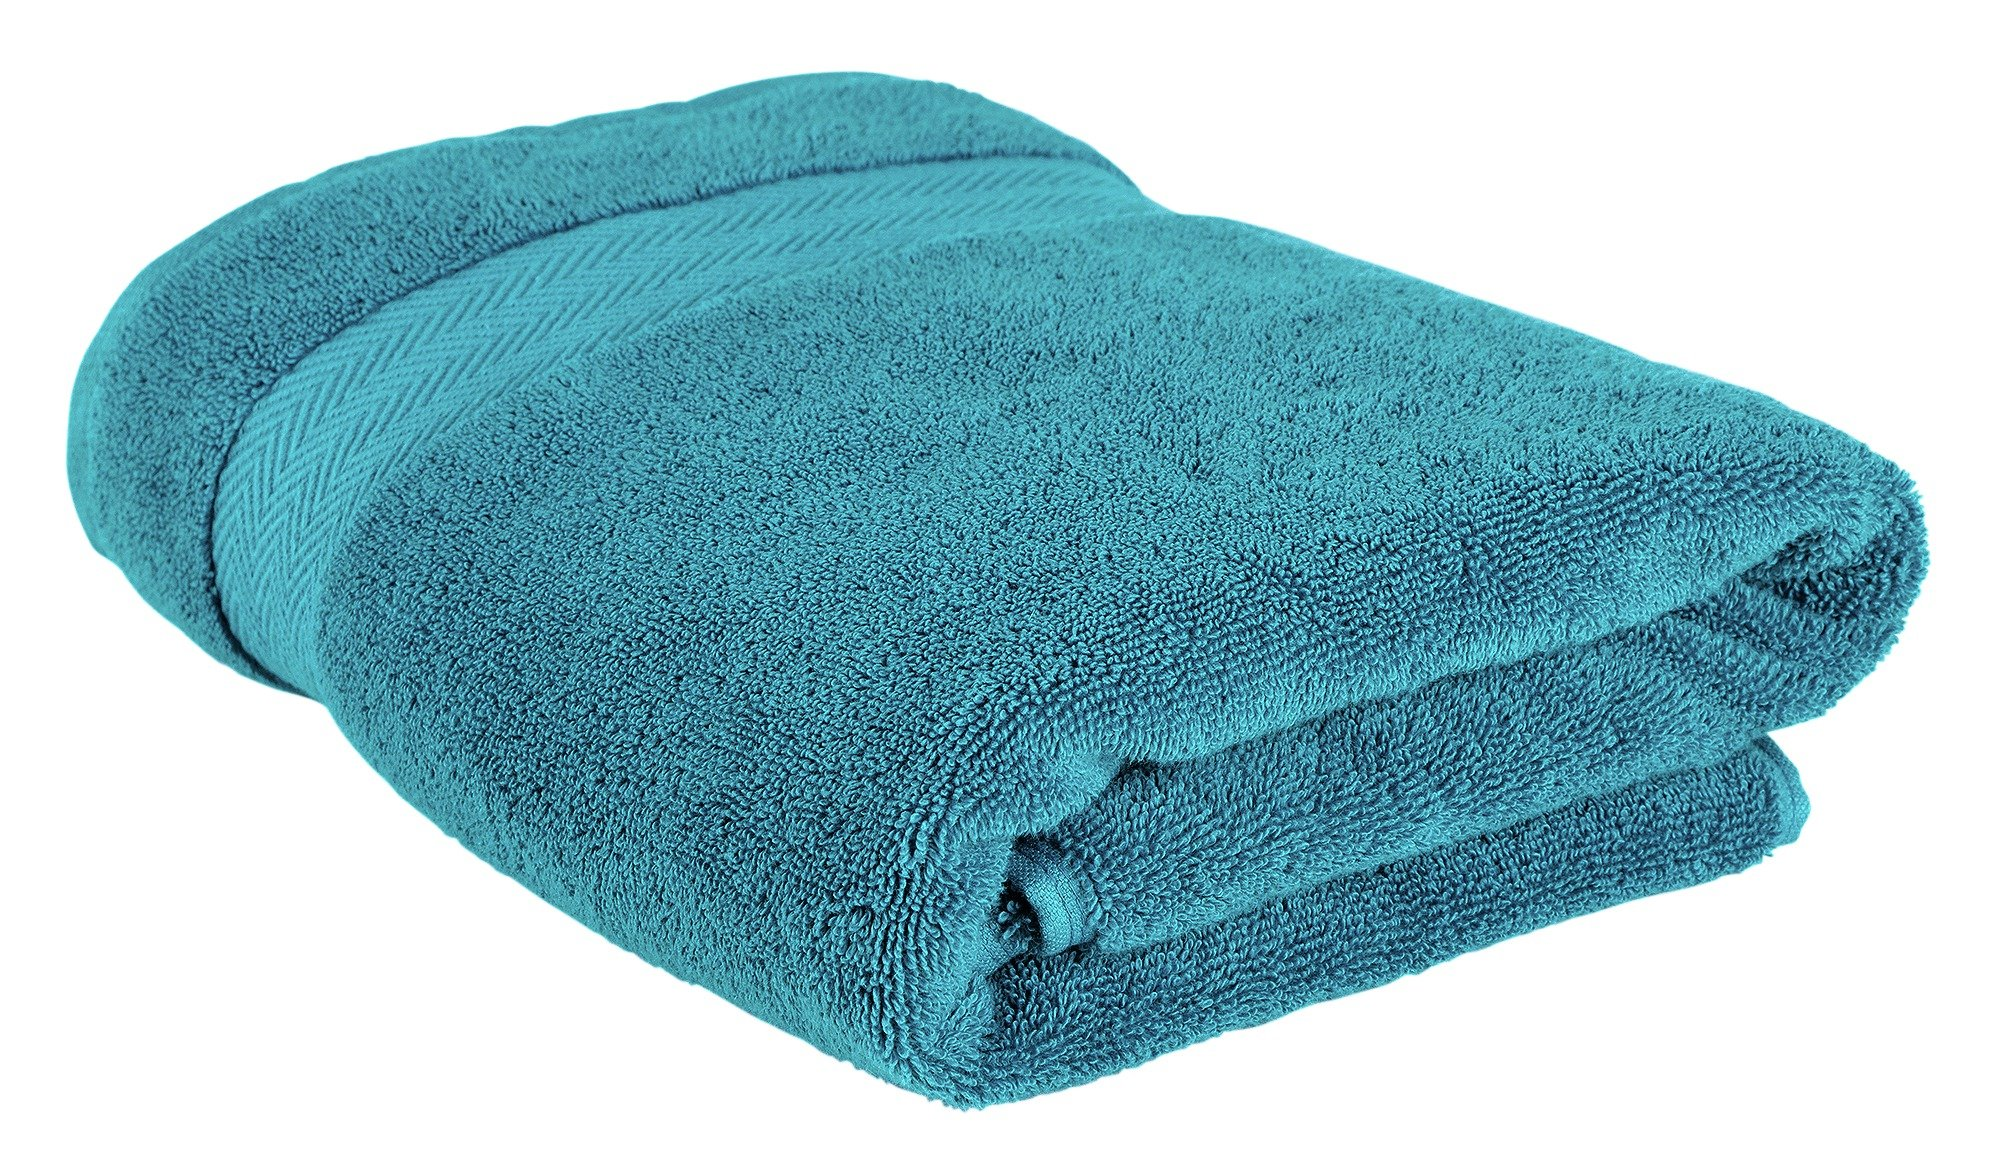 kingsley hygro bath sheet aqua